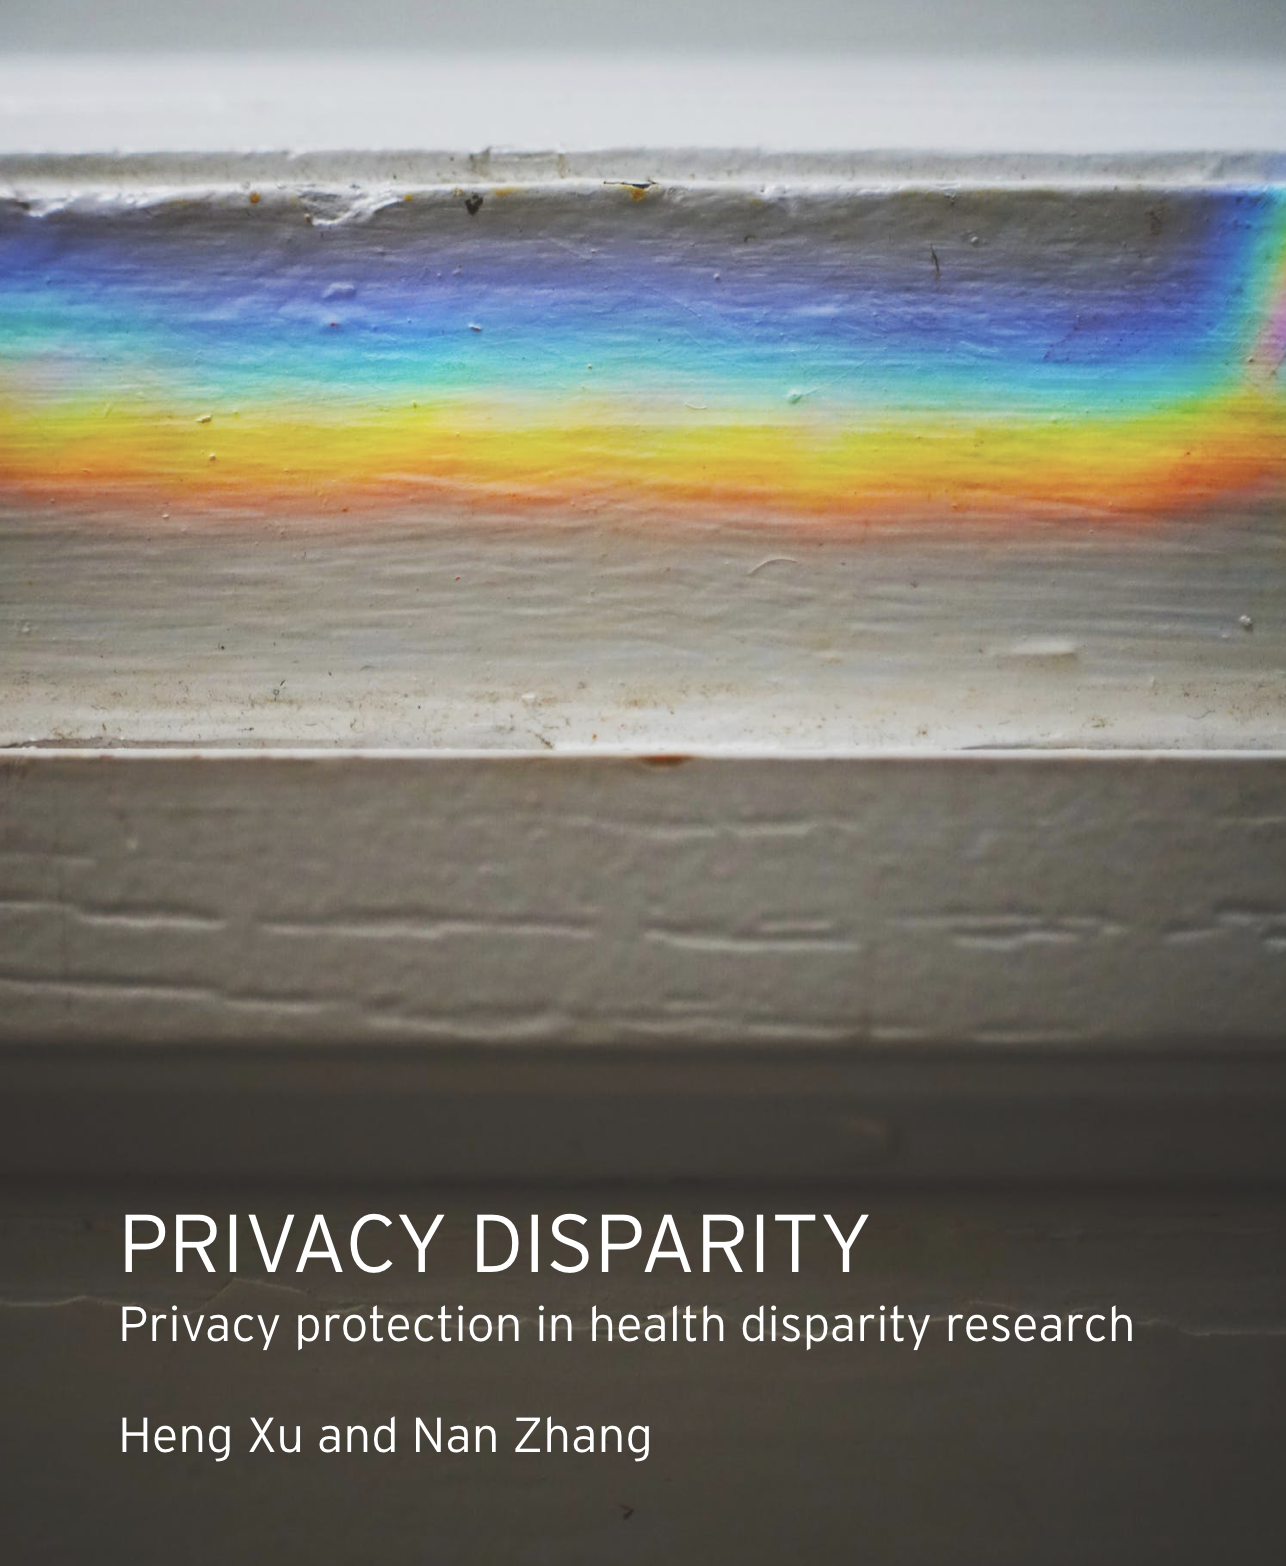 PRIVACY DISPARITY: Privacy protection in health disparity research